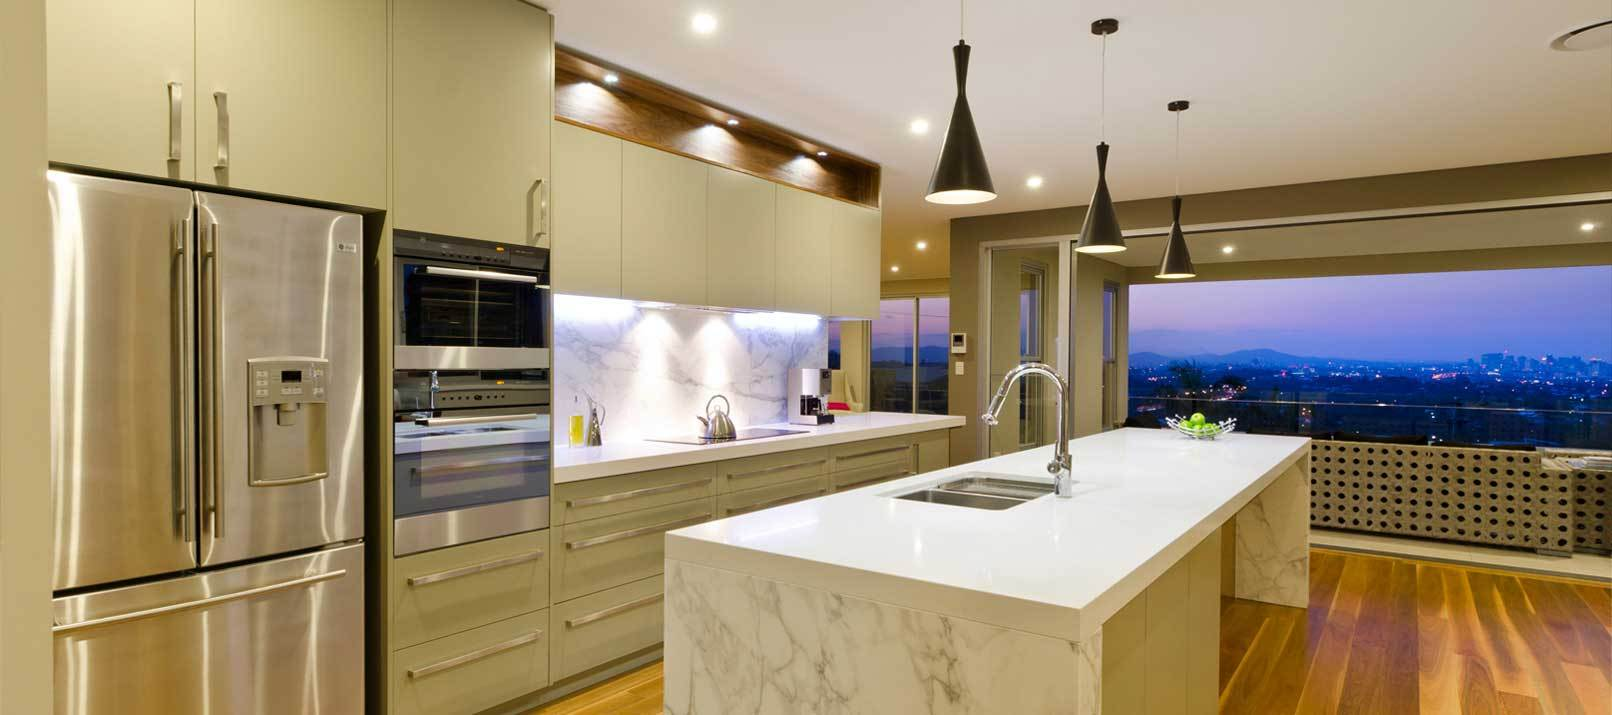 How to effectively plan your new kitchen designer kitchens for Kitchen design images